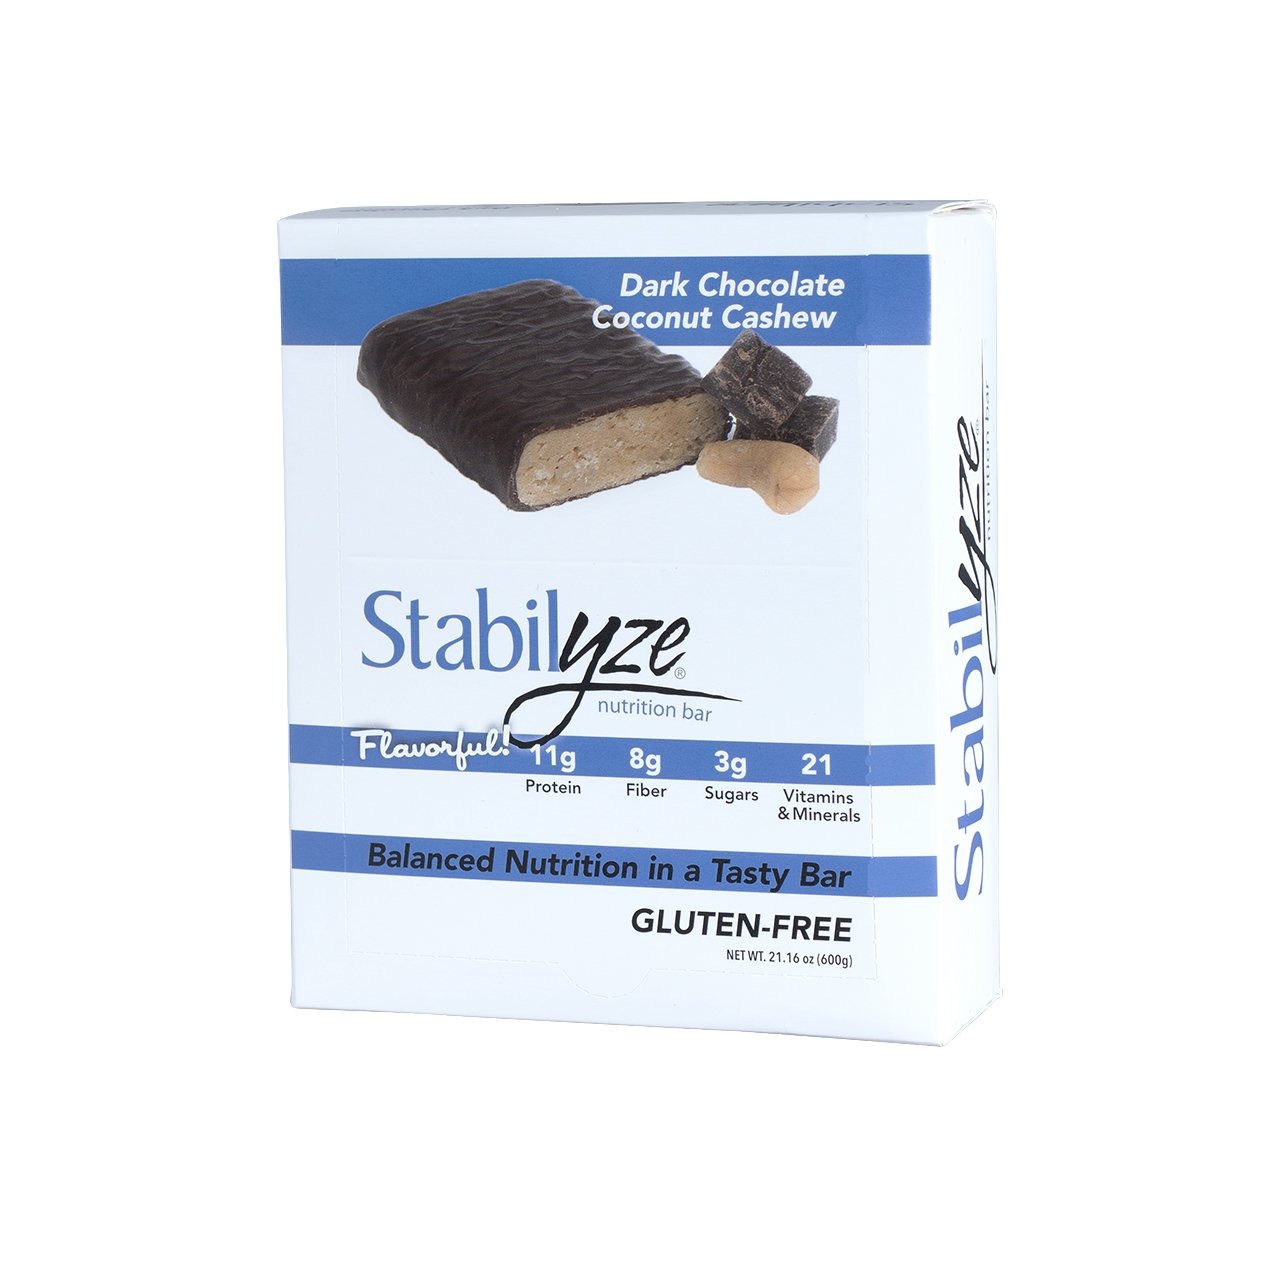 Stabilyze Nutrition Bar Dark Chocolate Coconut Cashew